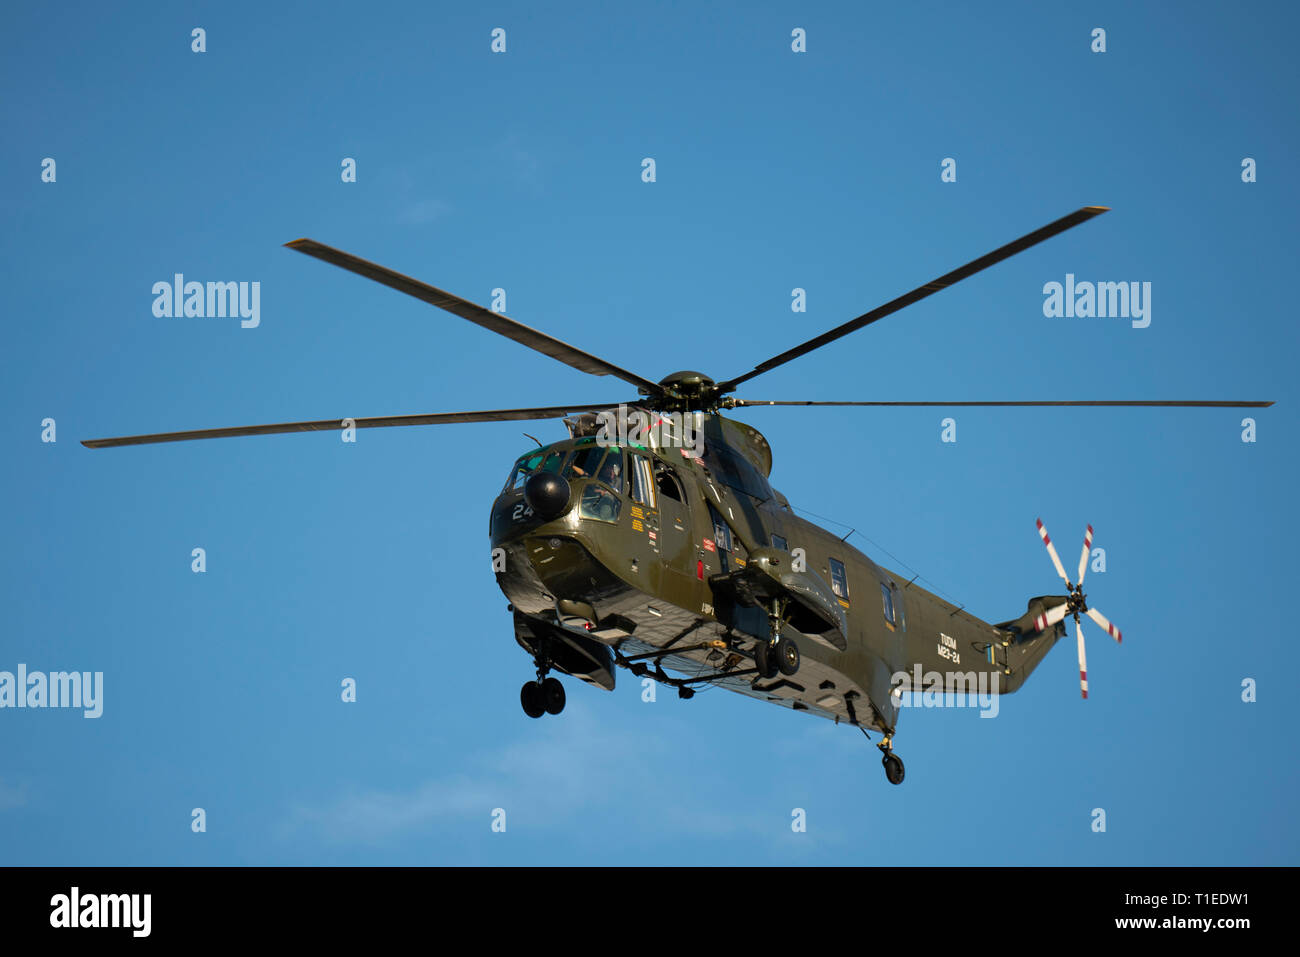 Langkawi, Malaysia. 26th March 2019. Helicopter performance by Malaysian Airforce at the LIMA exhibition Credit: Chung Jin Mac/Alamy Live News Stock Photo